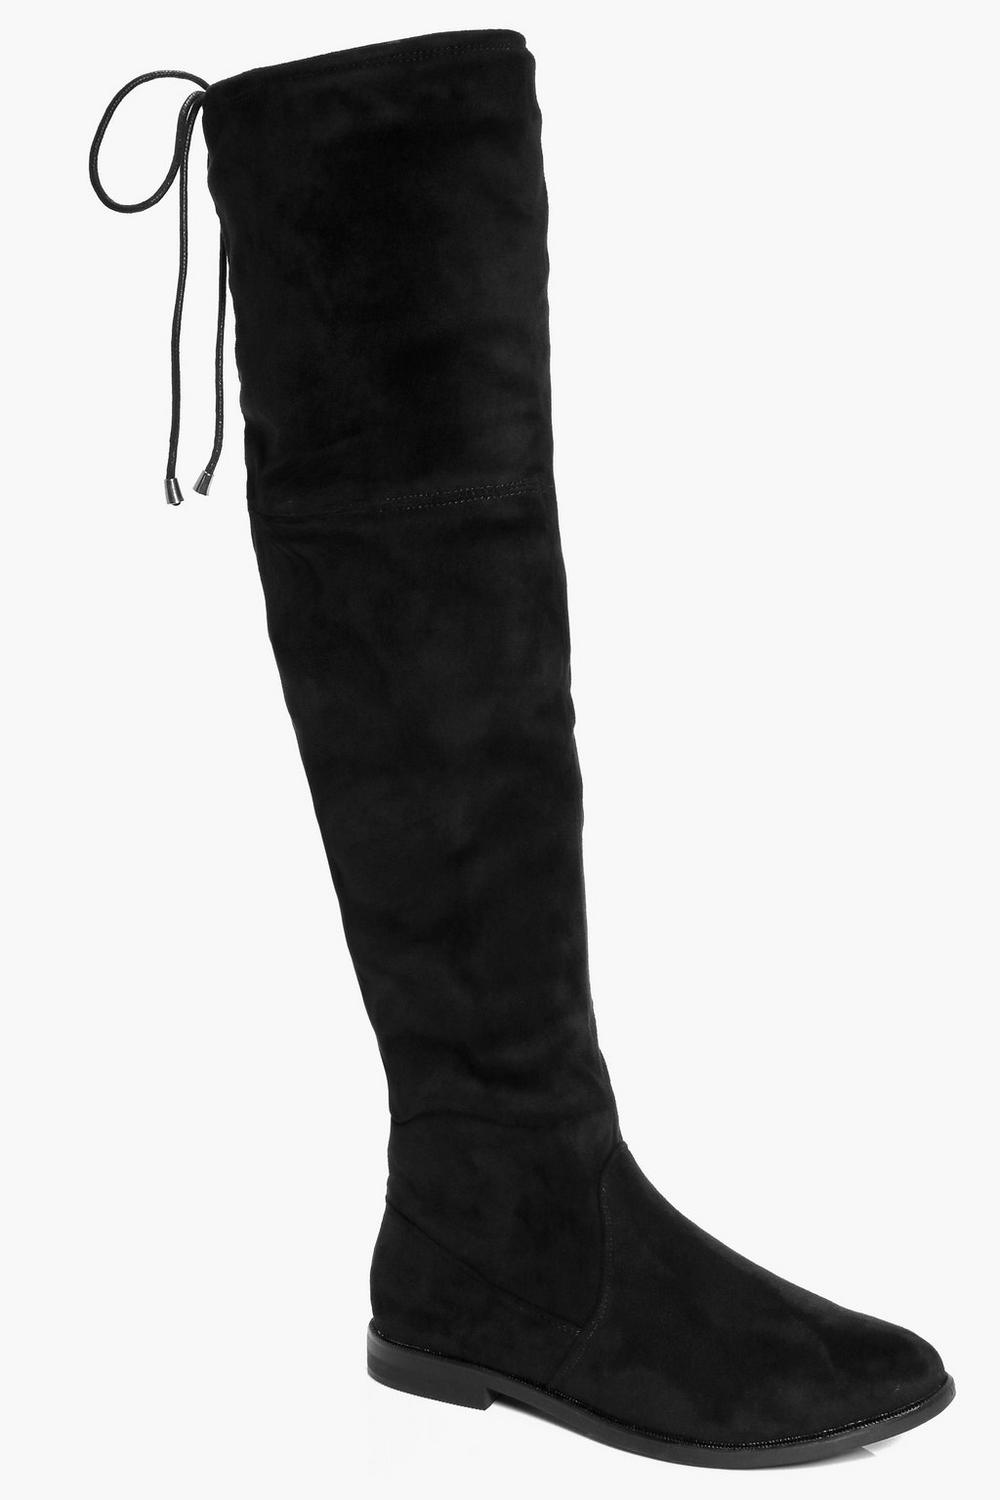 Erin Tie Back Flat Over The Knee Boot